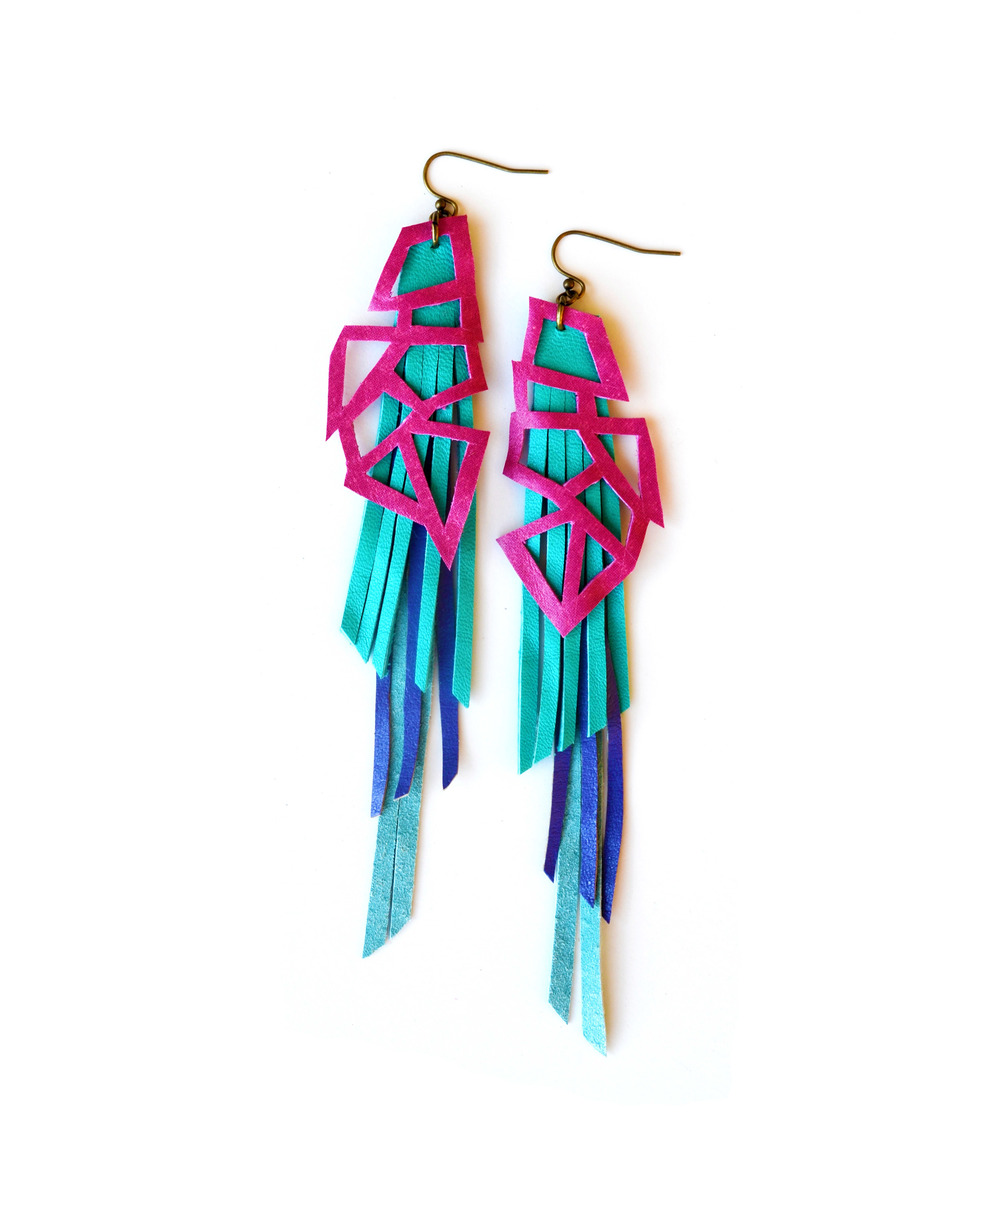 Geometric Earrings Neon Leather Triangles and Teal Fringe 5.jpg